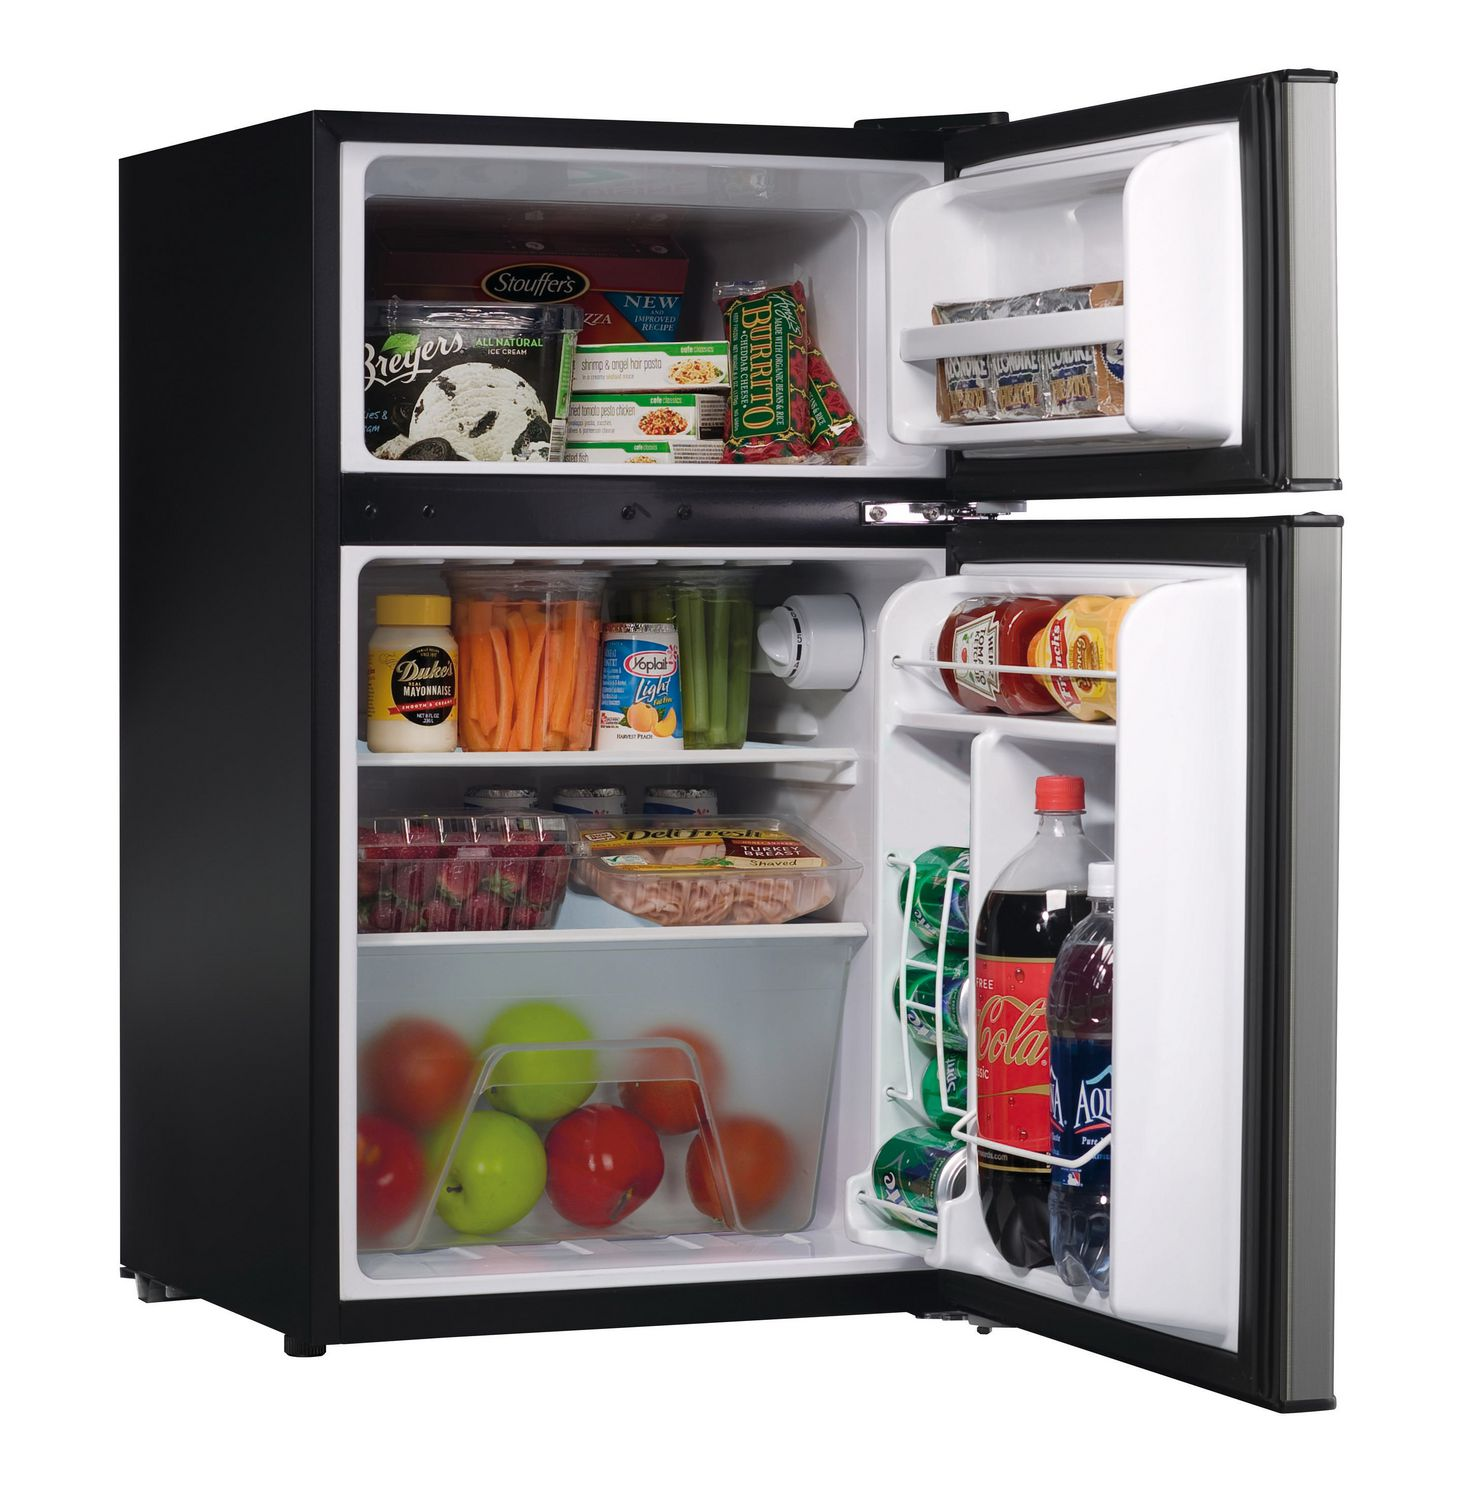 Fridges Canada Whirlpool Energy Star 3 1 Cu Ft Compact 2 Door Refrigerator